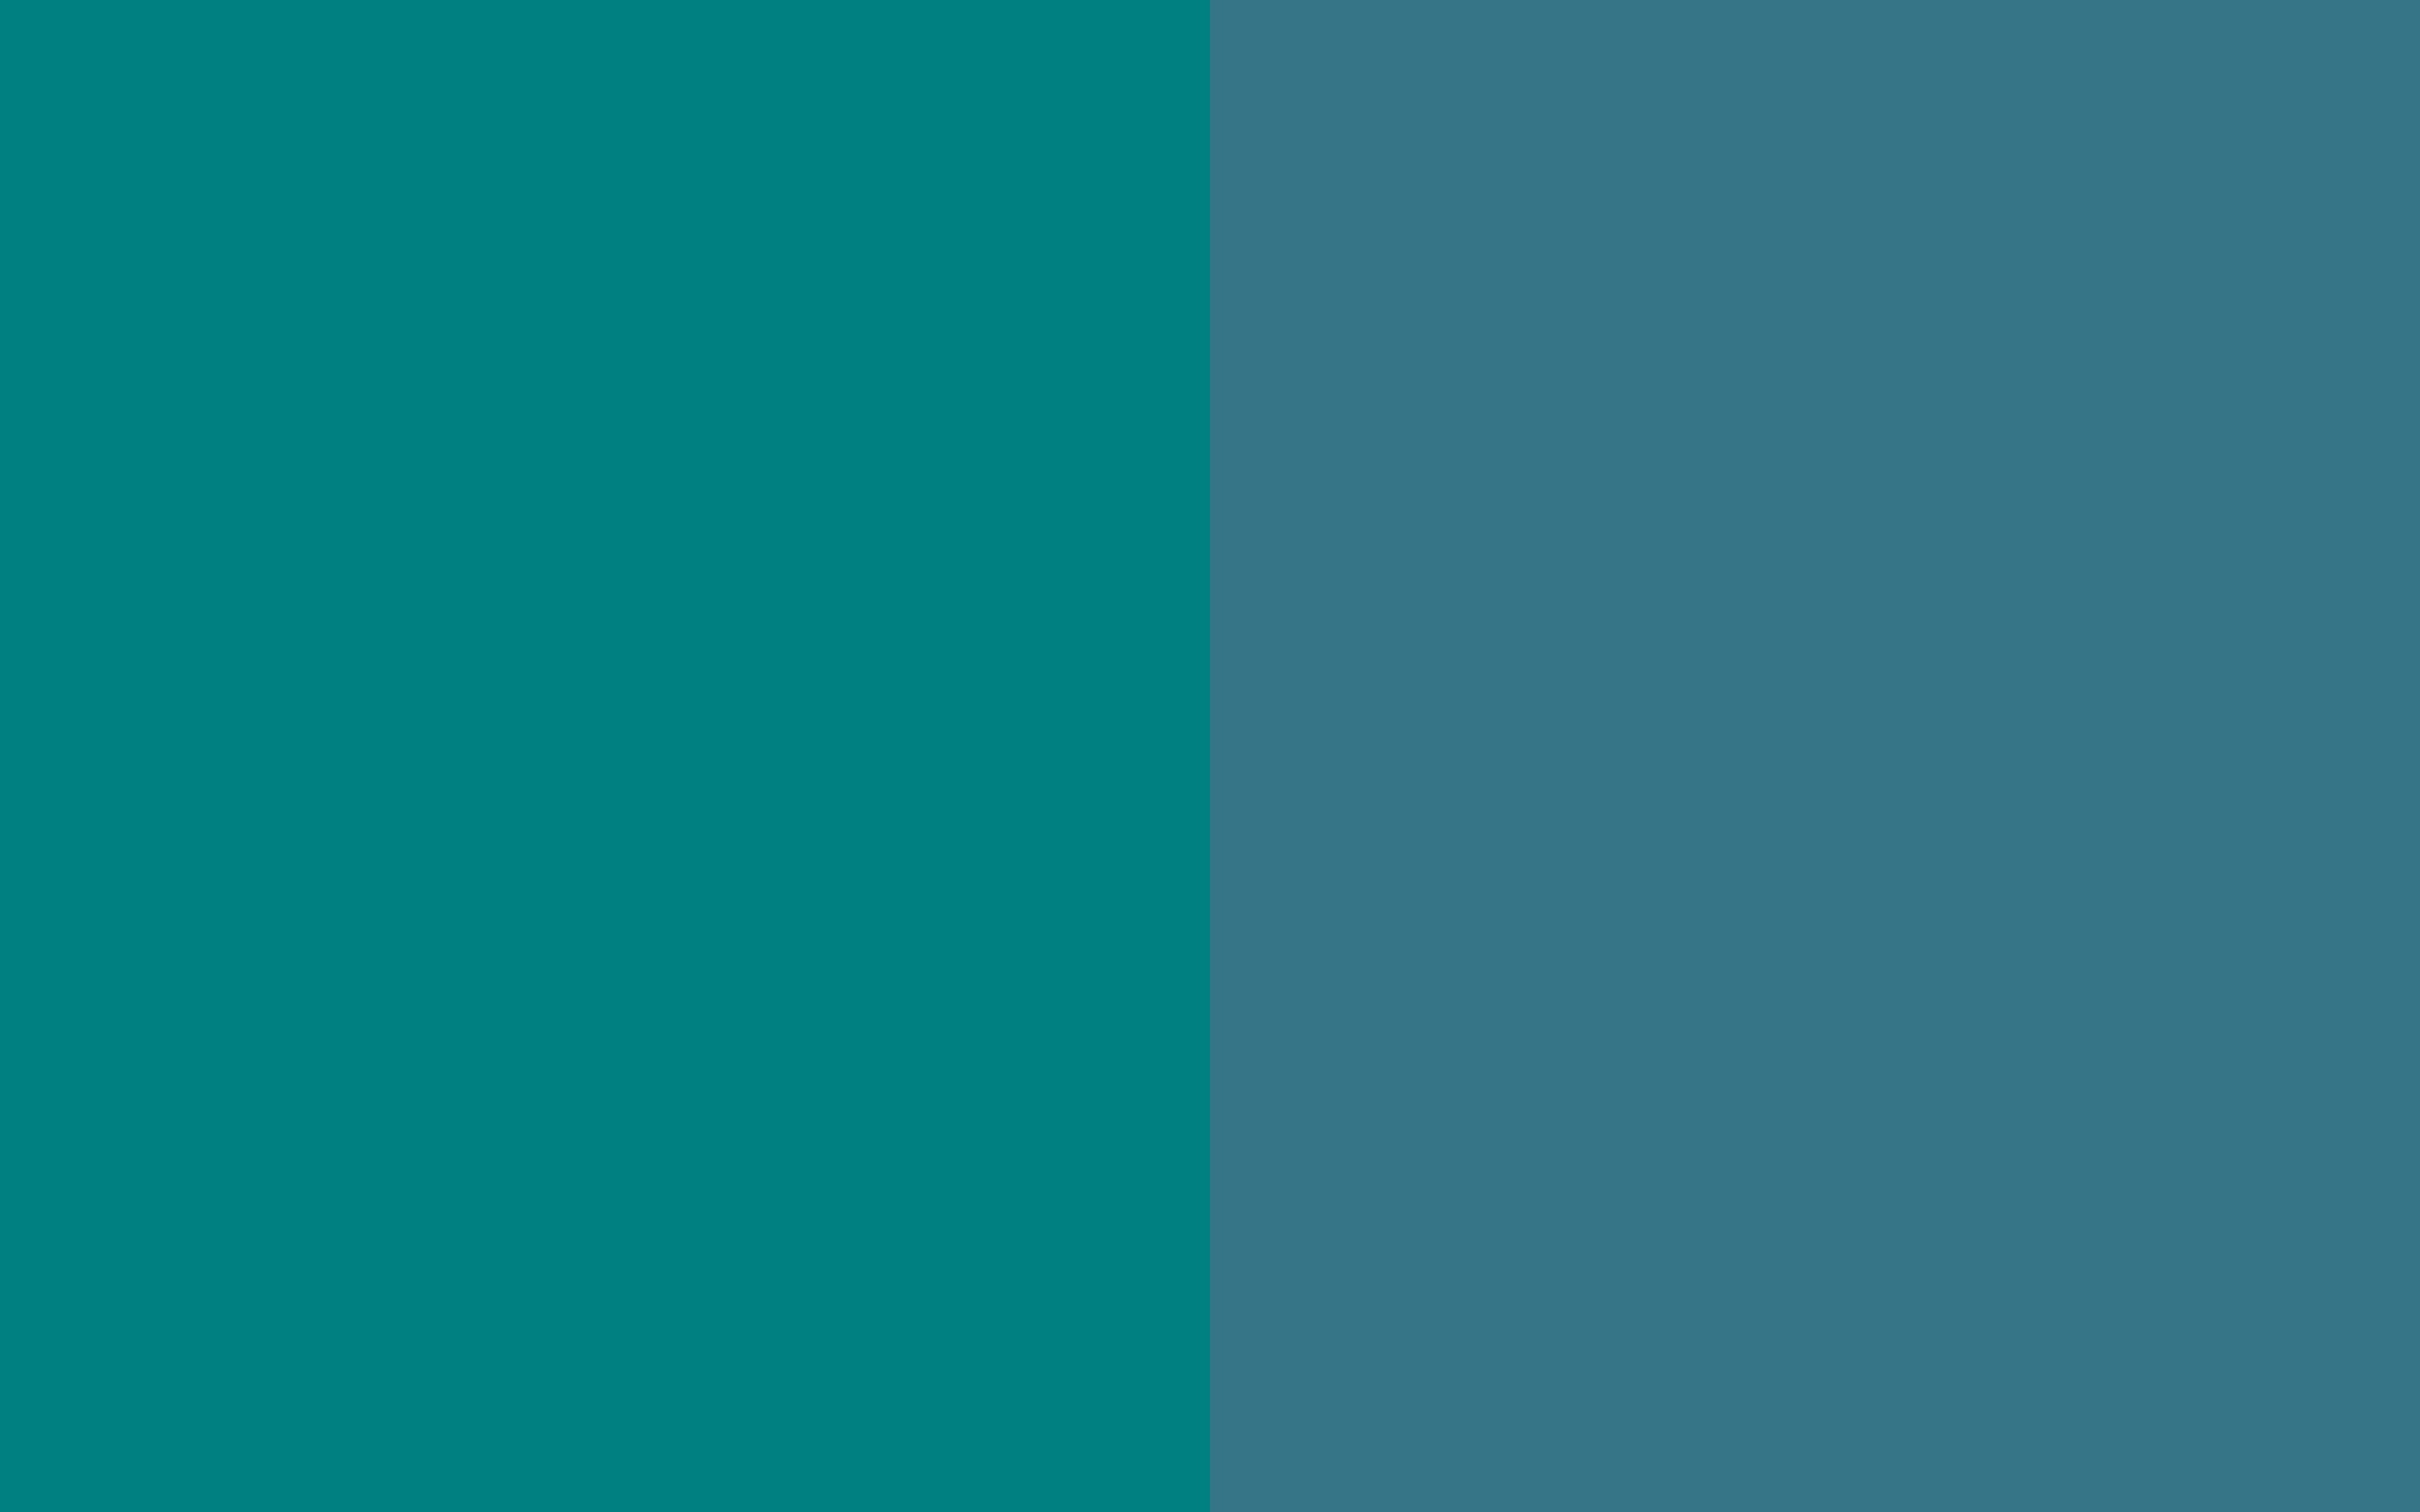 2880x1800 resolution Teal and Teal Blue solid two color background 2880x1800